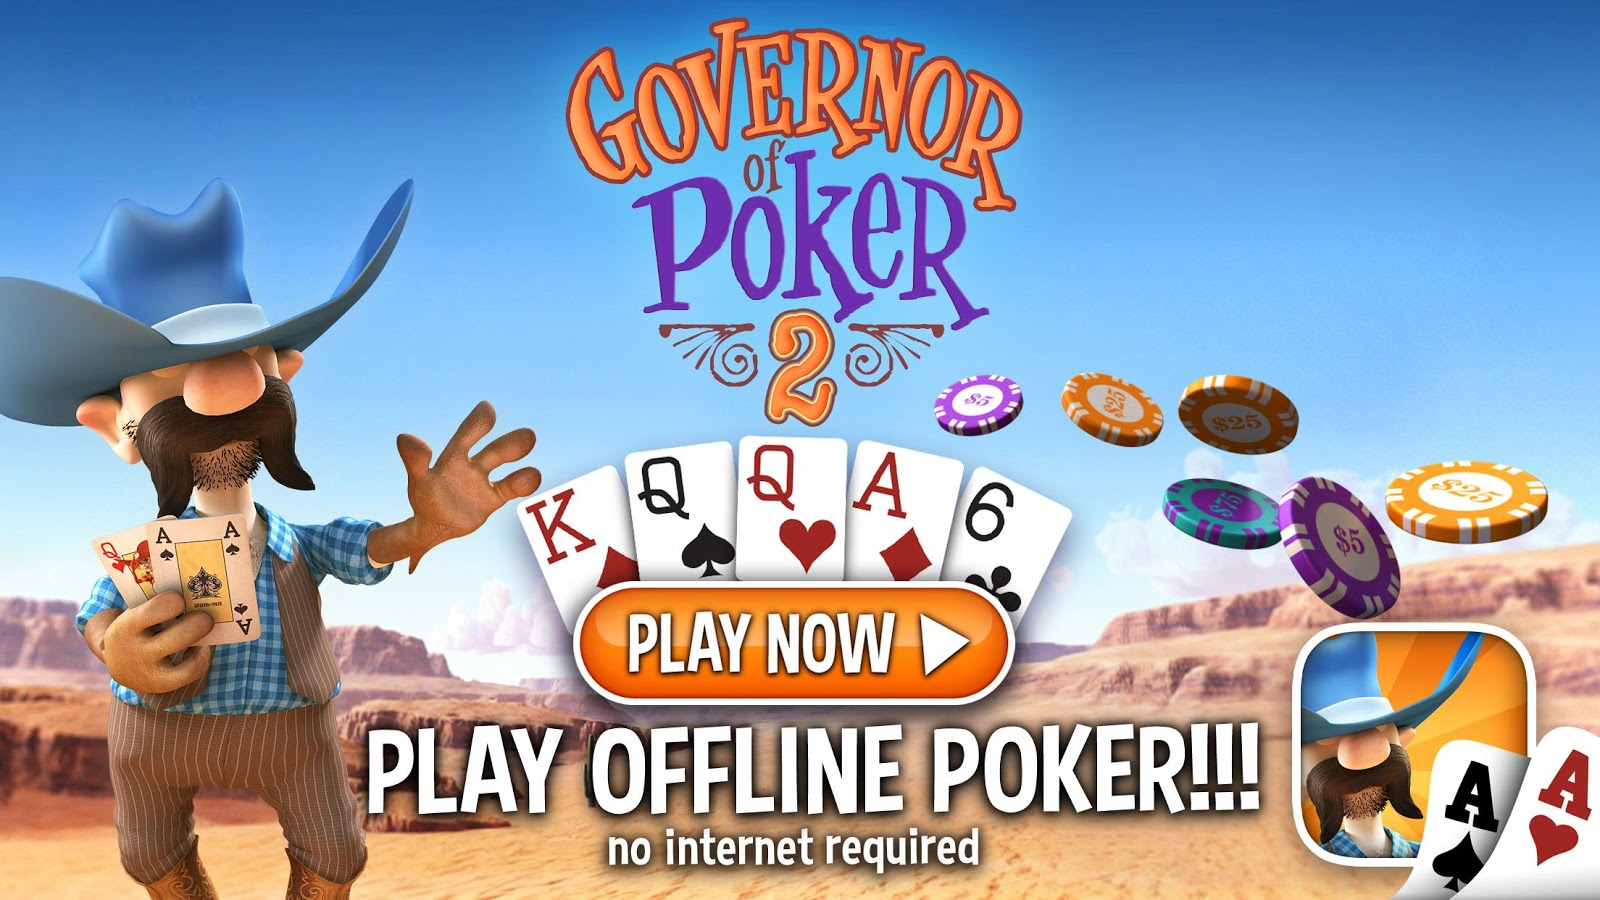 governer poker